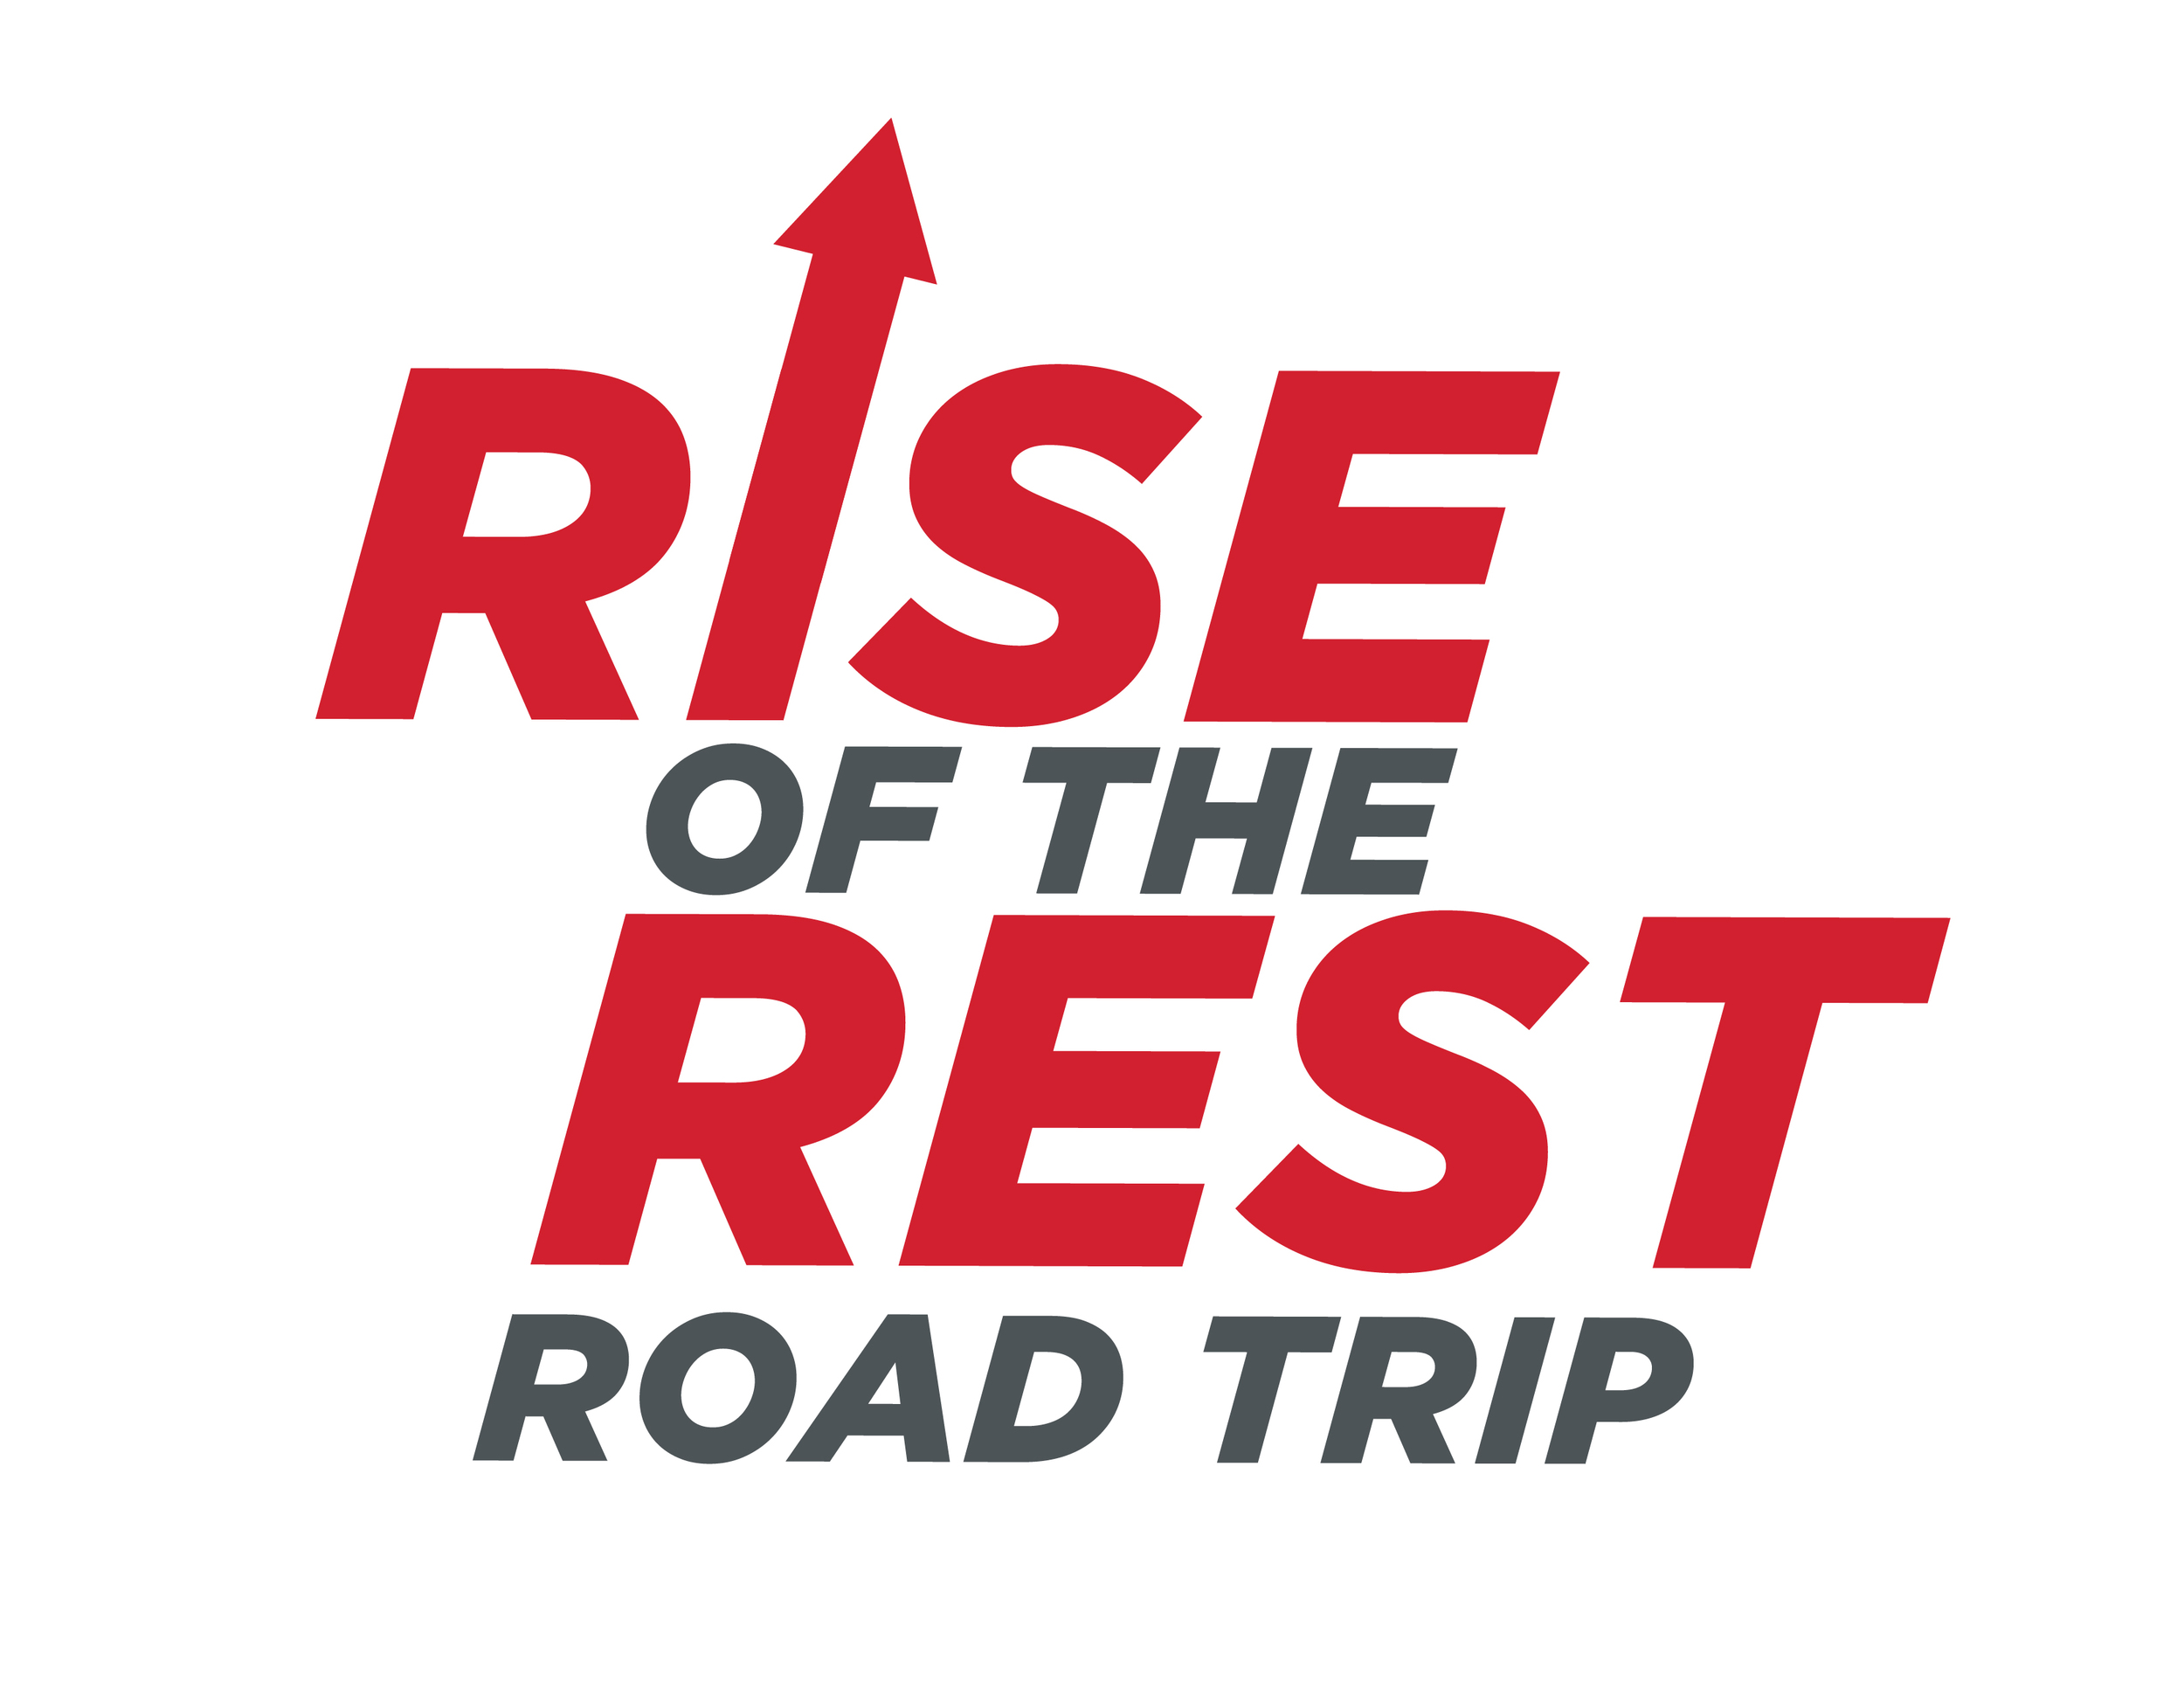 RiseOfTheRest-RoadTrip-logo-01-01.jpg